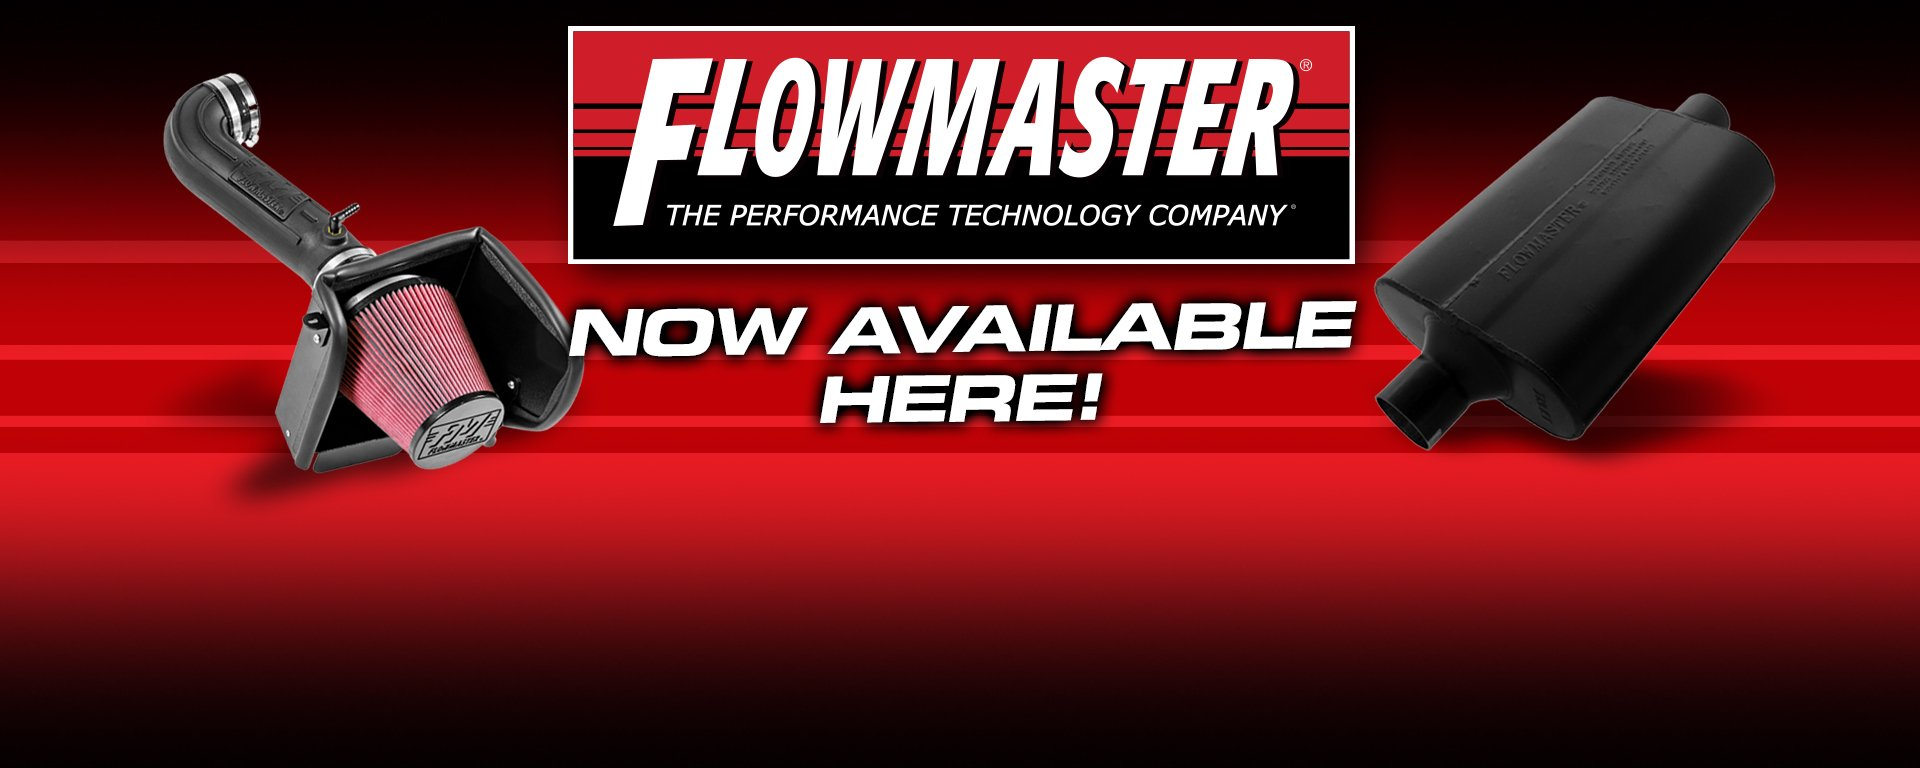 hight resolution of flowmaster news new hot flowmaster parts